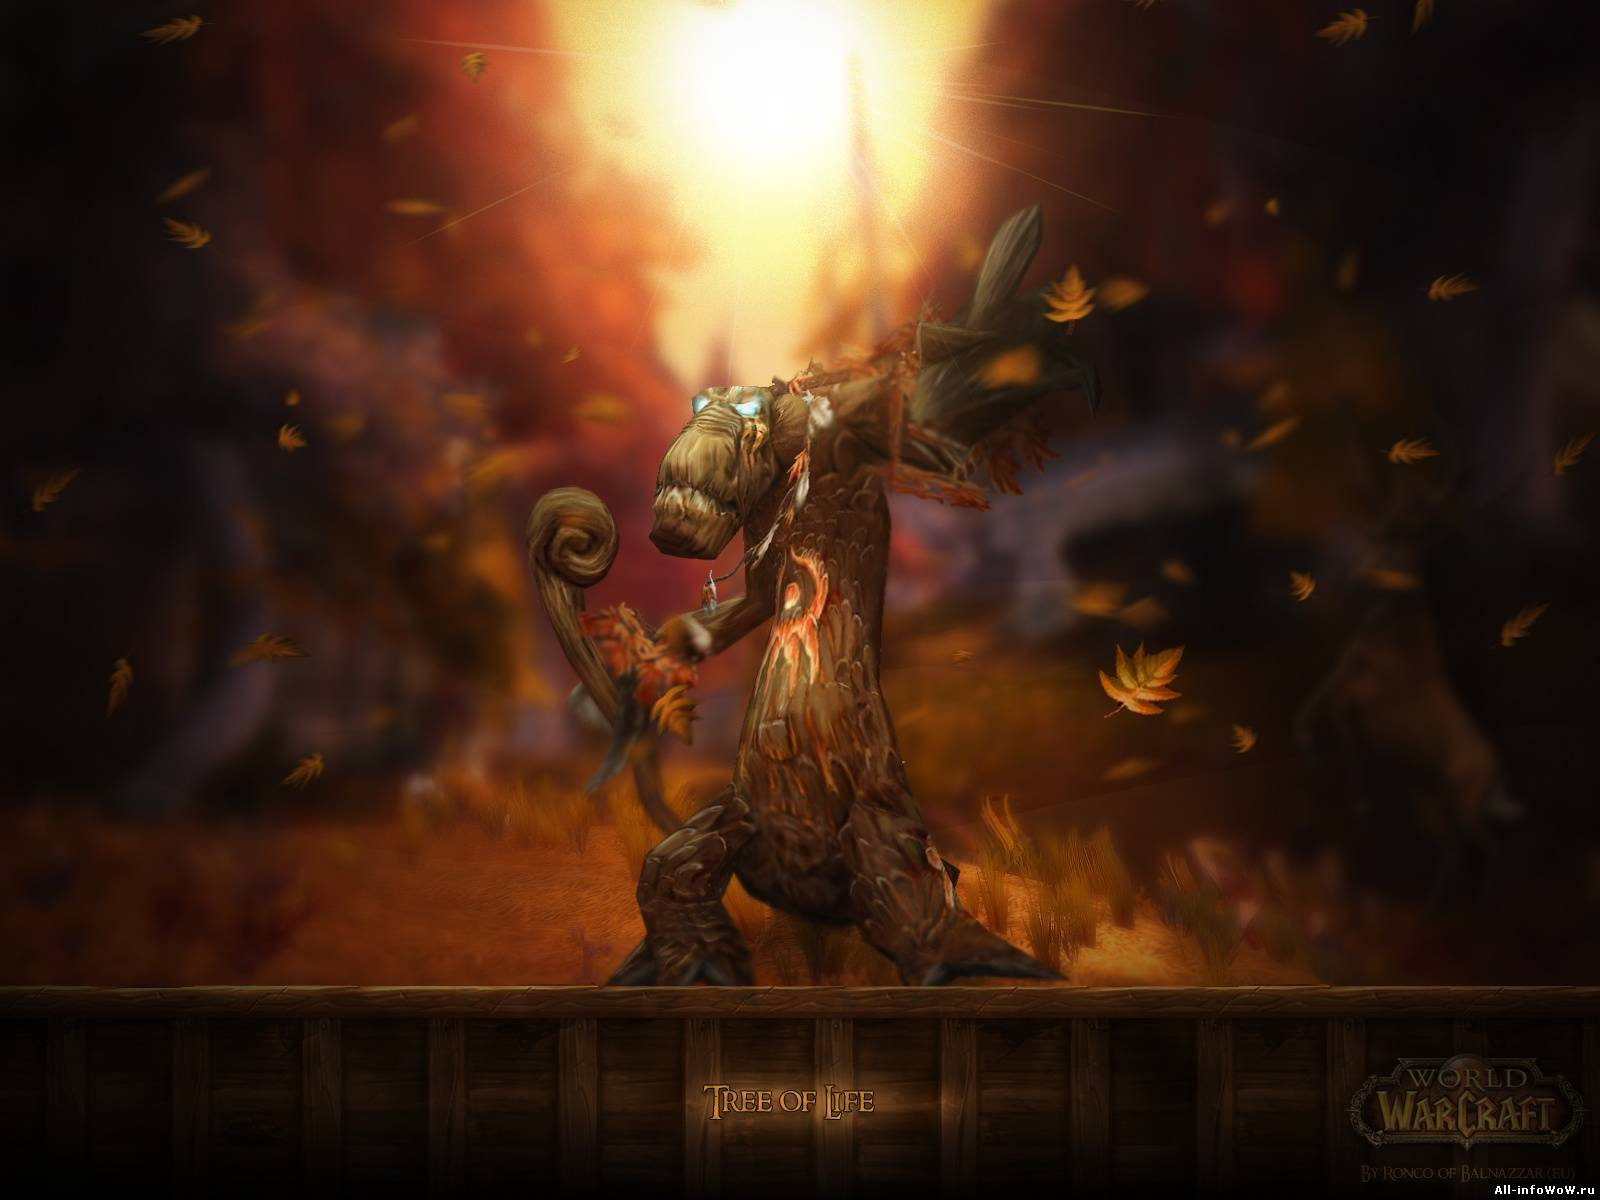 world of warcraft college essay World of warcraft: mists of pandaria dawnette polland eng 325 intermediate composition jessica ruddick october 22, 2012 world of warcraft: mists of pandaria blizzard entertainment's (blizzard) world of warcraft games are a massively multiplayer online role-playing game (mmorpg) that was reported by craig glenday (2009), in.